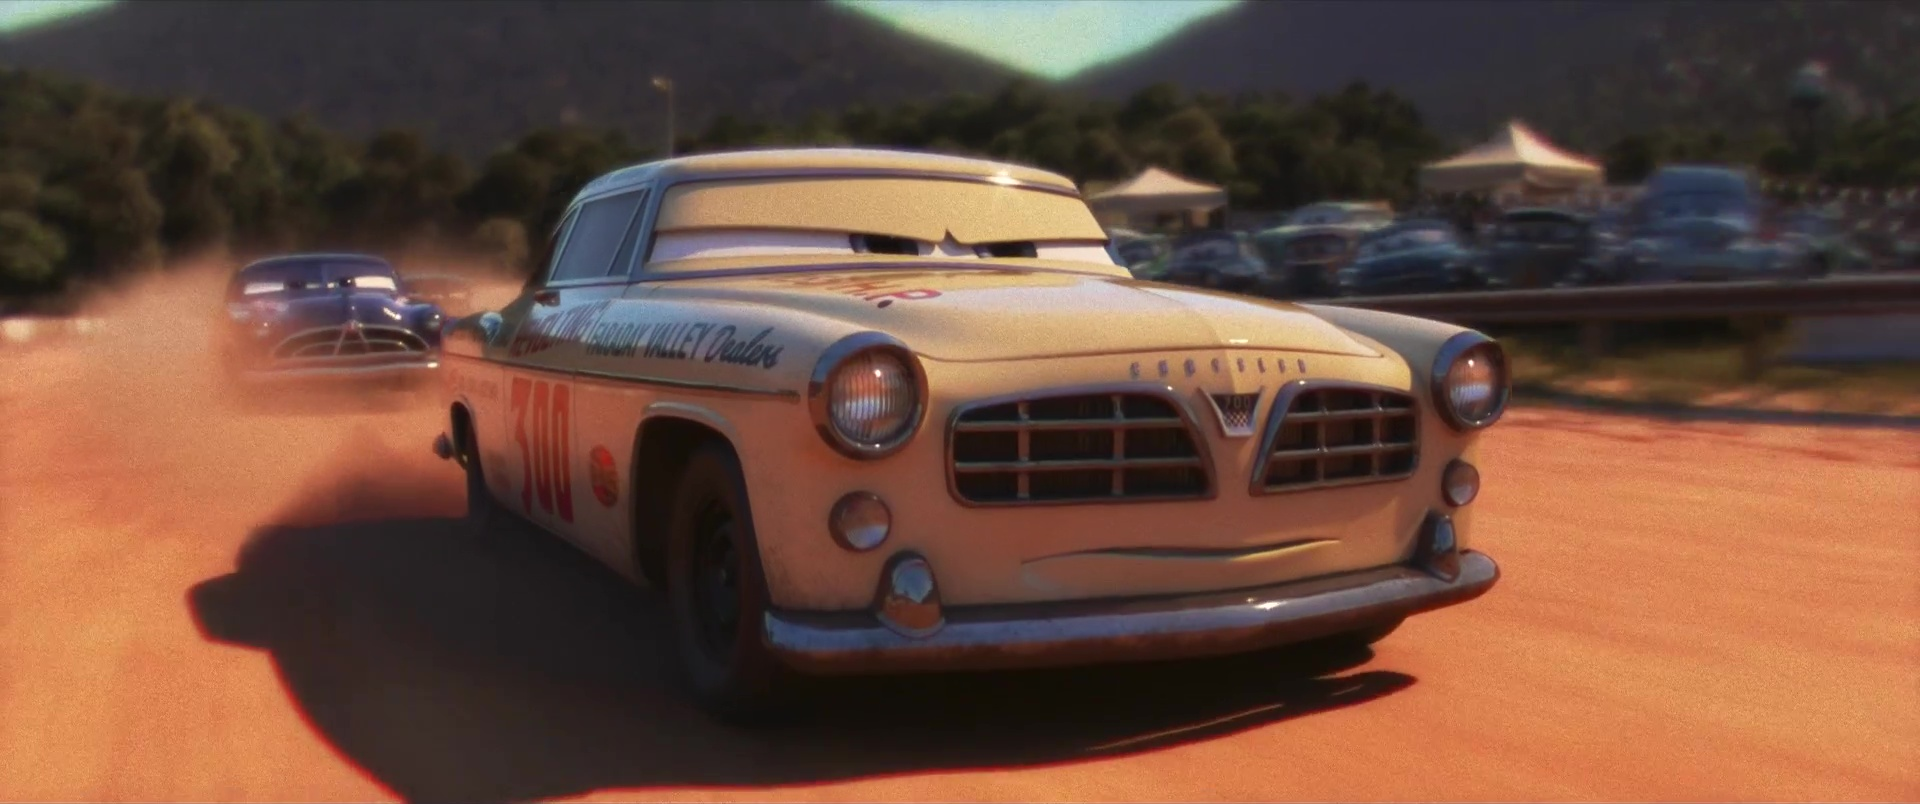 leroy-heming-personnage-cars-3-01